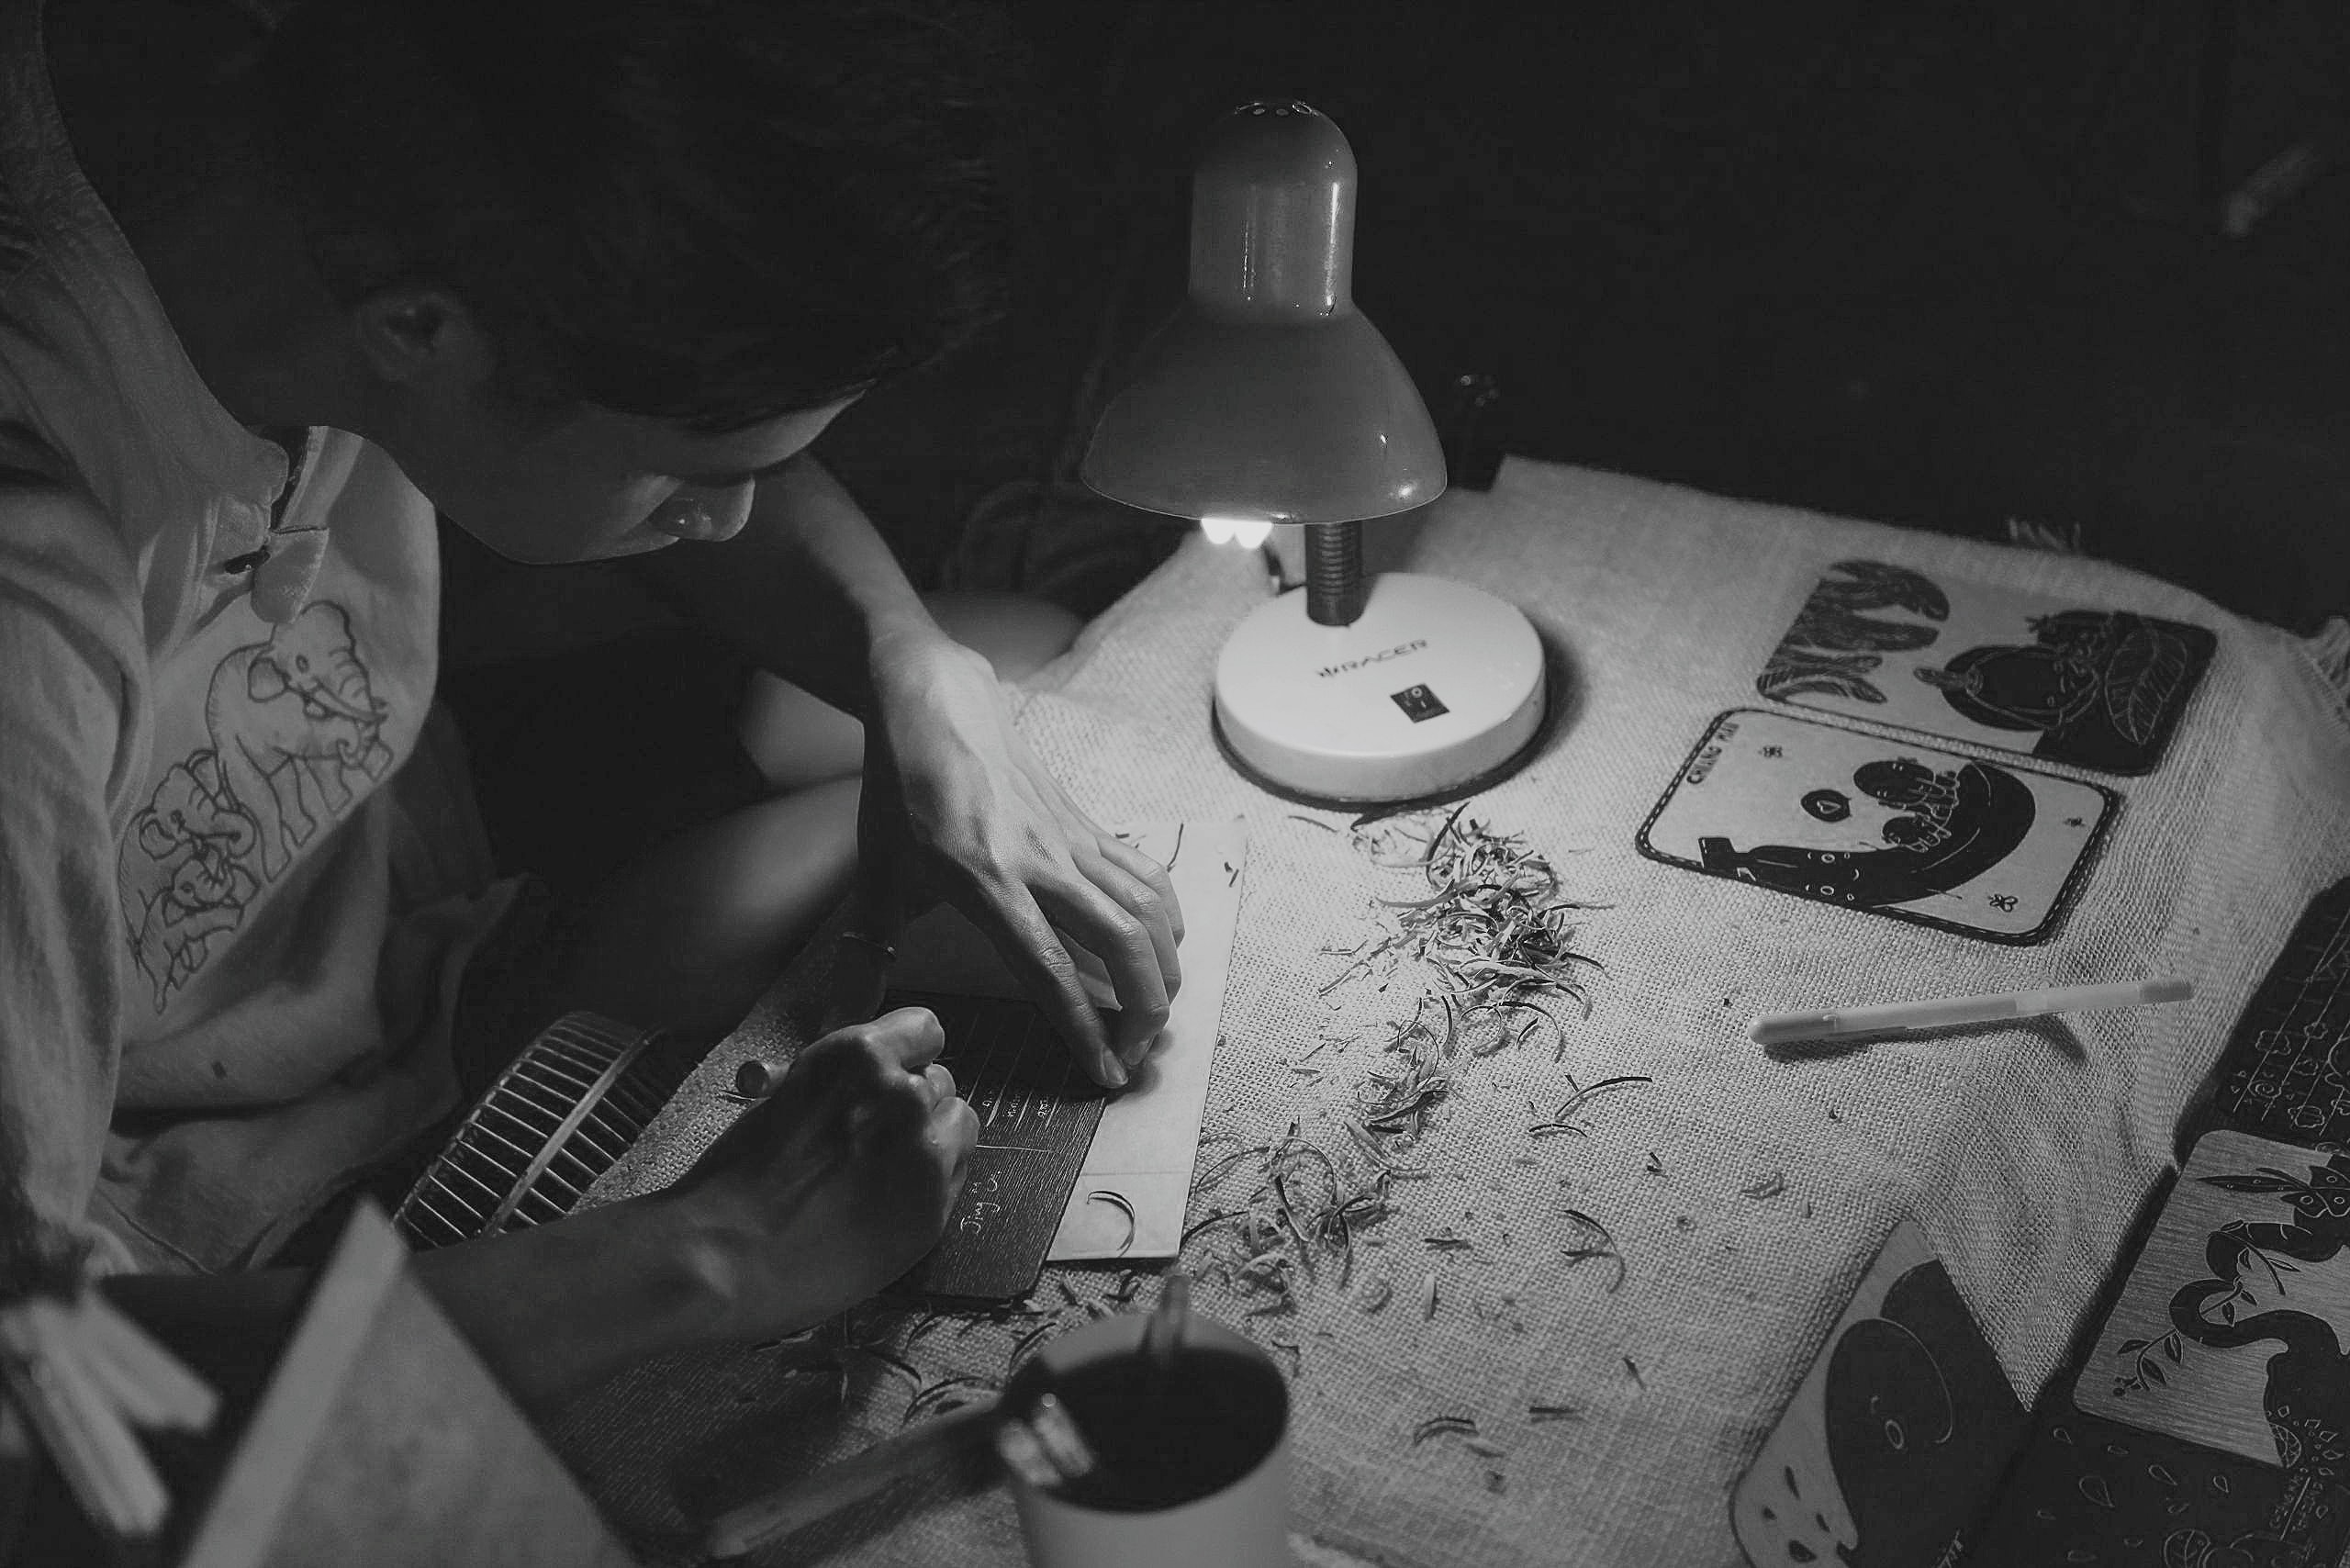 grayscale photography of man writing on brown paper near turned on lamp